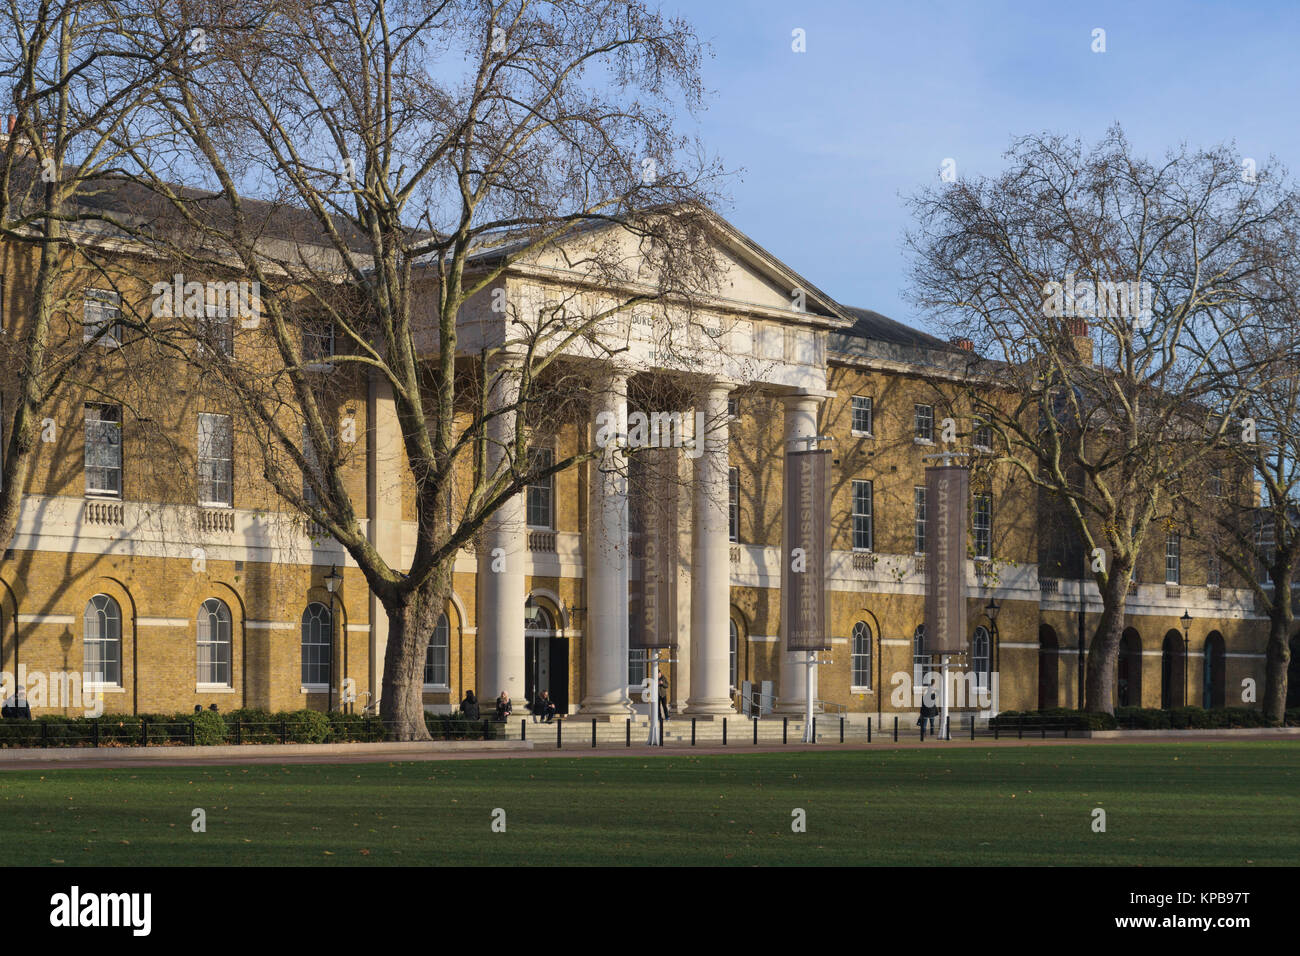 Exterior of the Saatchi Gallery at the former Duke of York's Barracks, Chelsea, London, England, UK - Stock Image